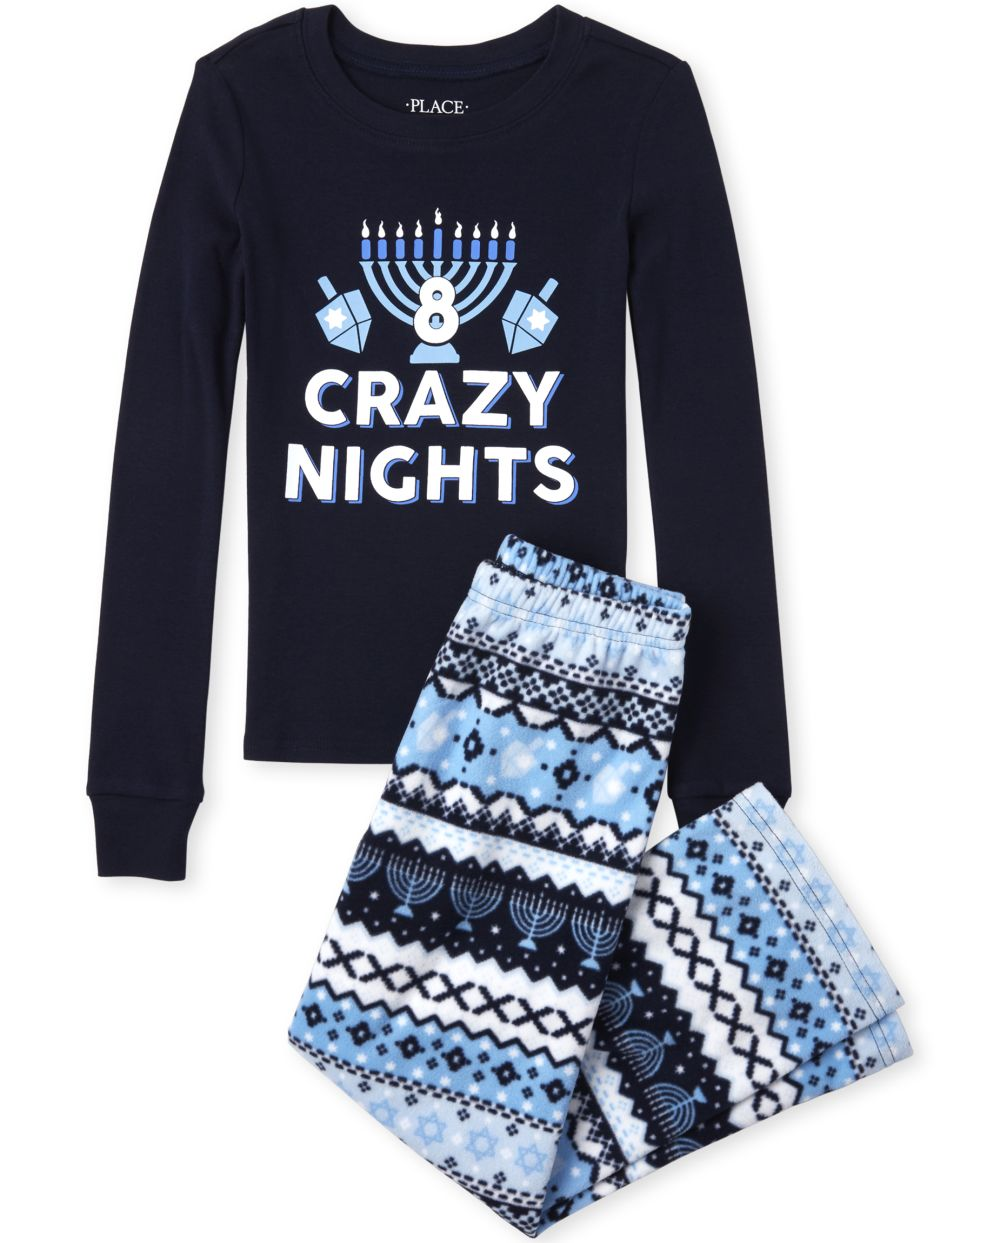 Unisex Kids Matching Family 8 Crazy Nights Snug Fit Cotton And Fleece Pajamas